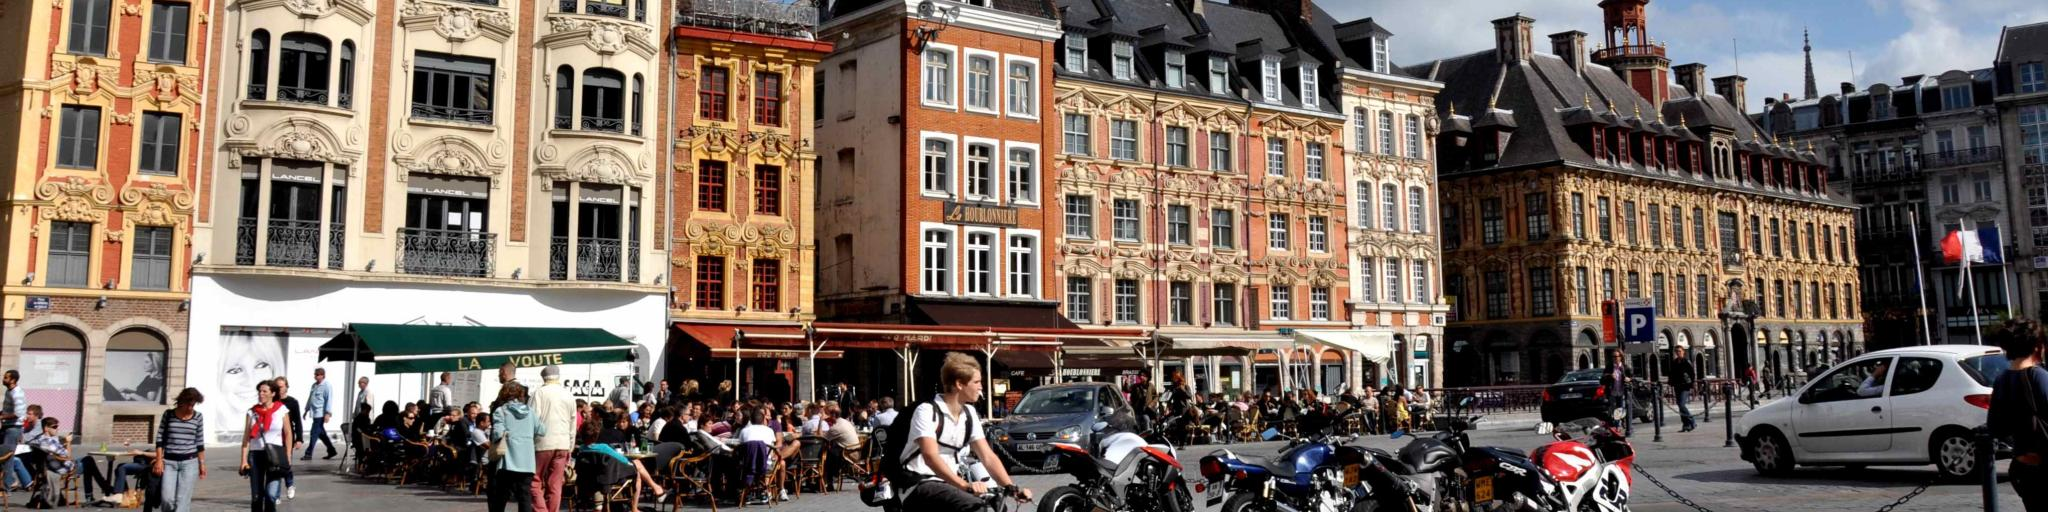 A cyclist bikes across a city square on a sunny day in Lille, France